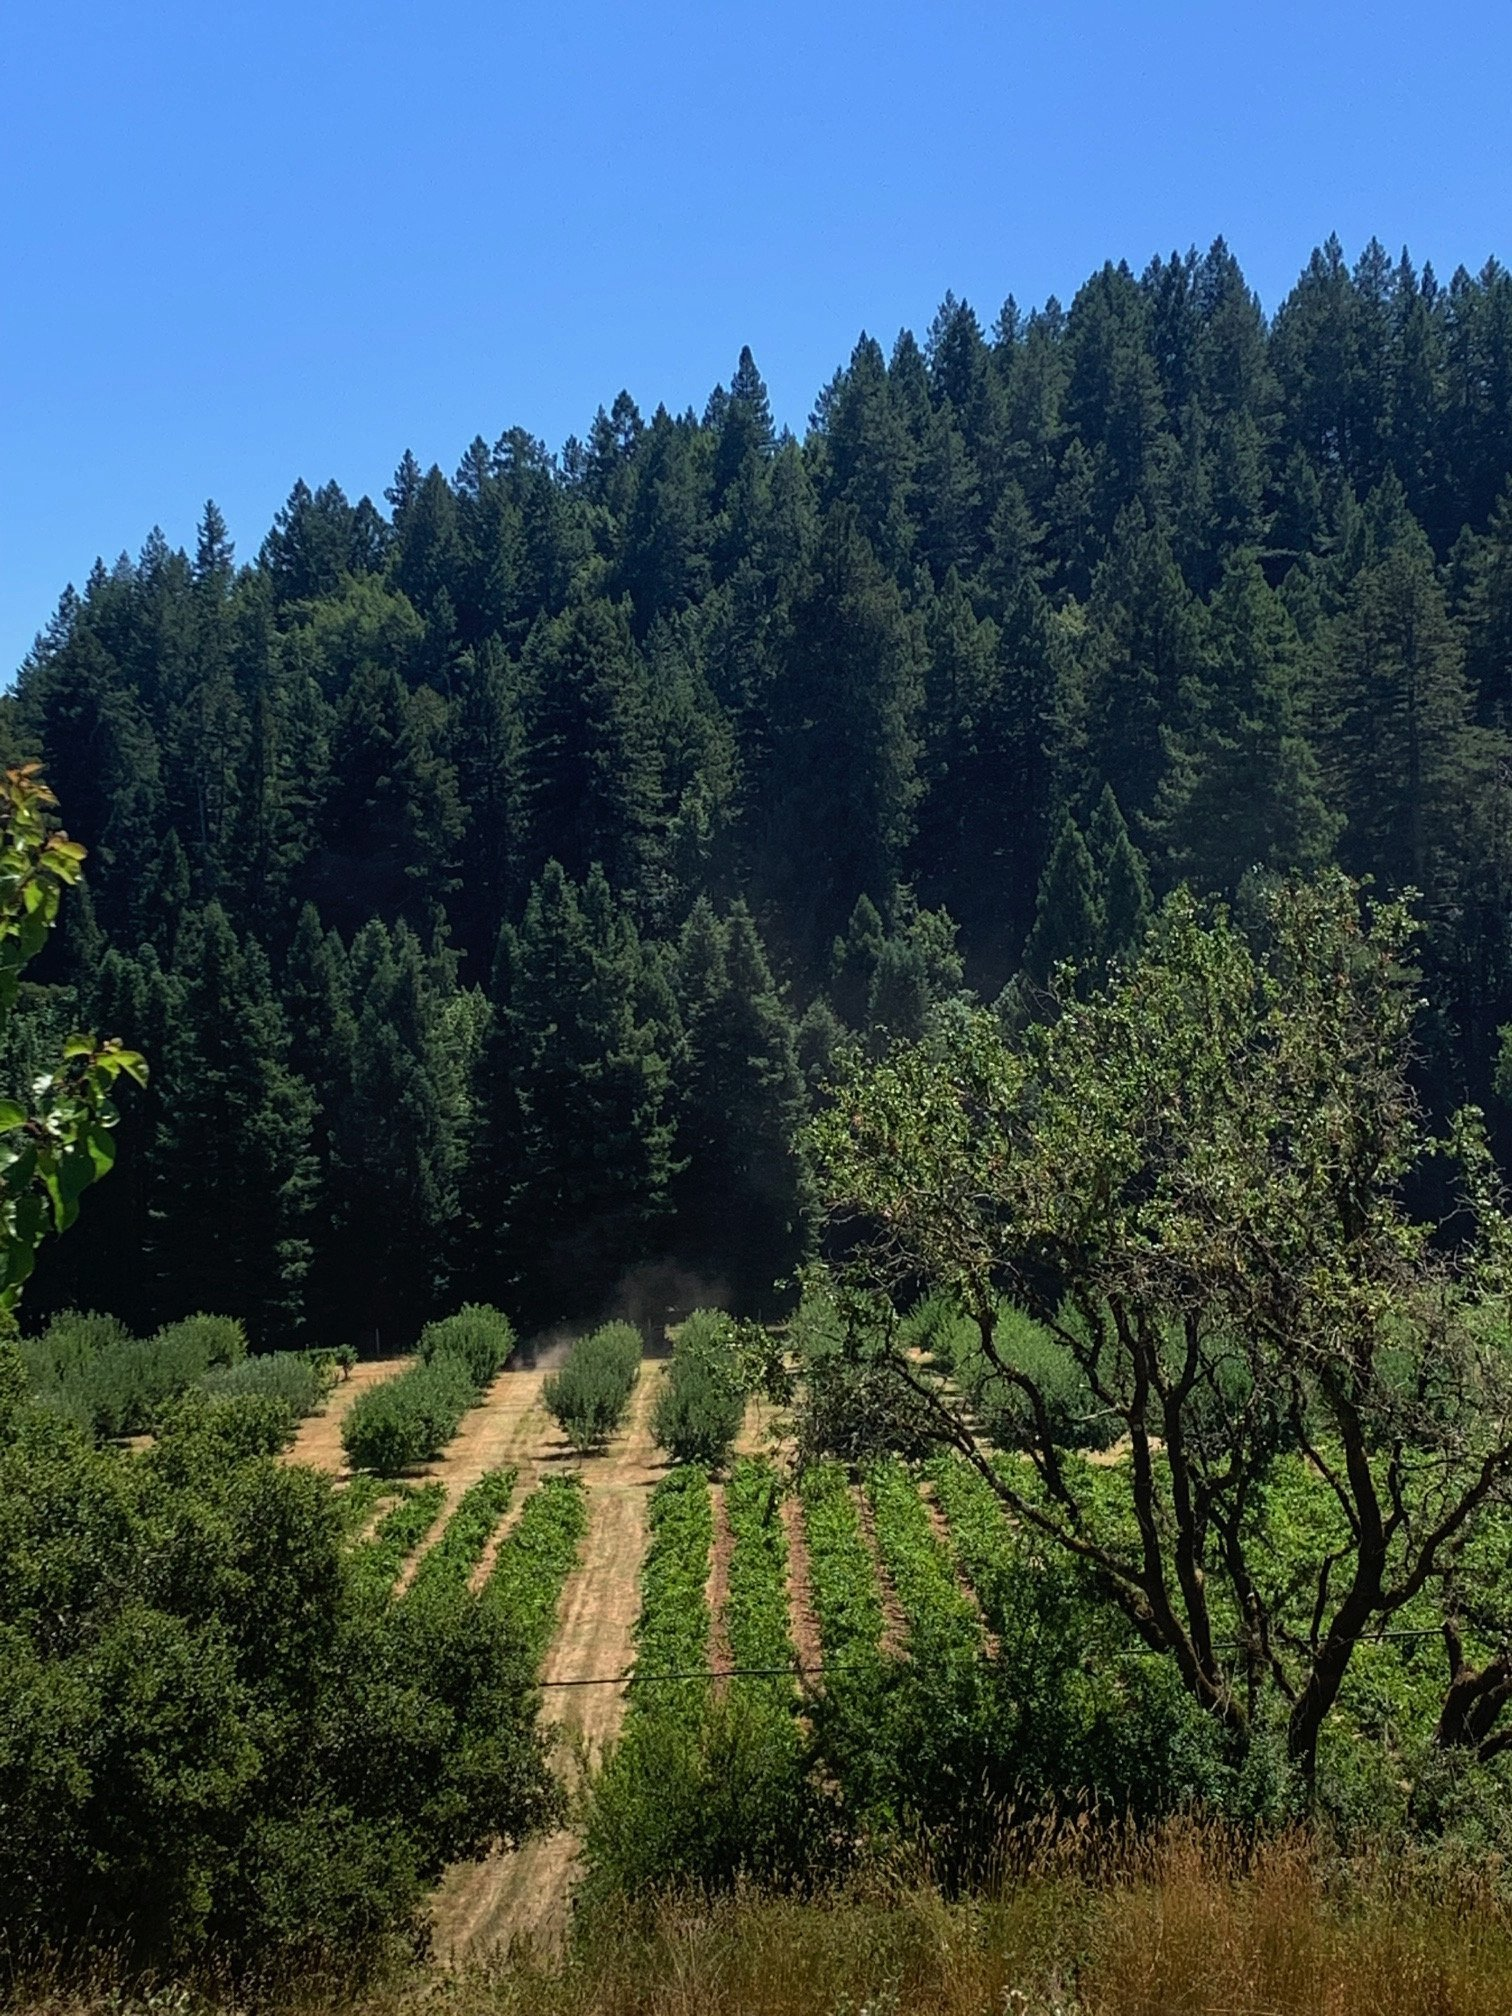 PQR ( Por Qué Ranch) is 5 acres of Russian River Valley farming bliss. Located on Westside Road, it is one of the only ranches that grows